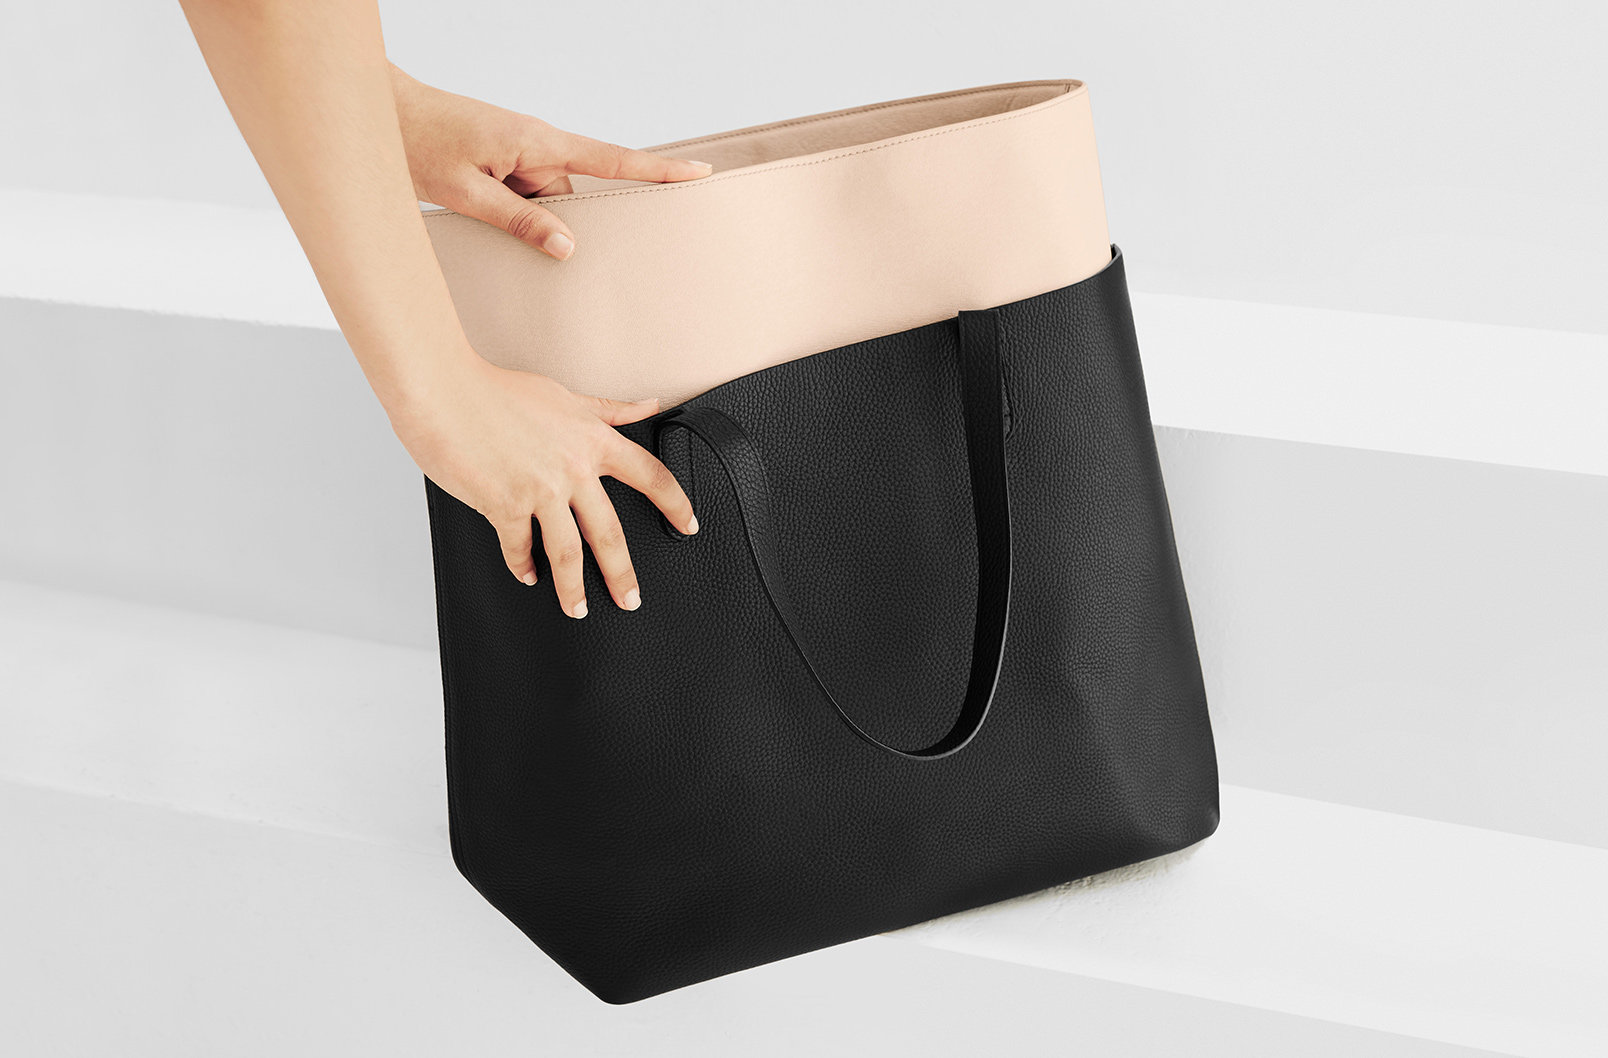 Woman's hands putting Blush Tote Organization Insert going into Classic Leather Tote